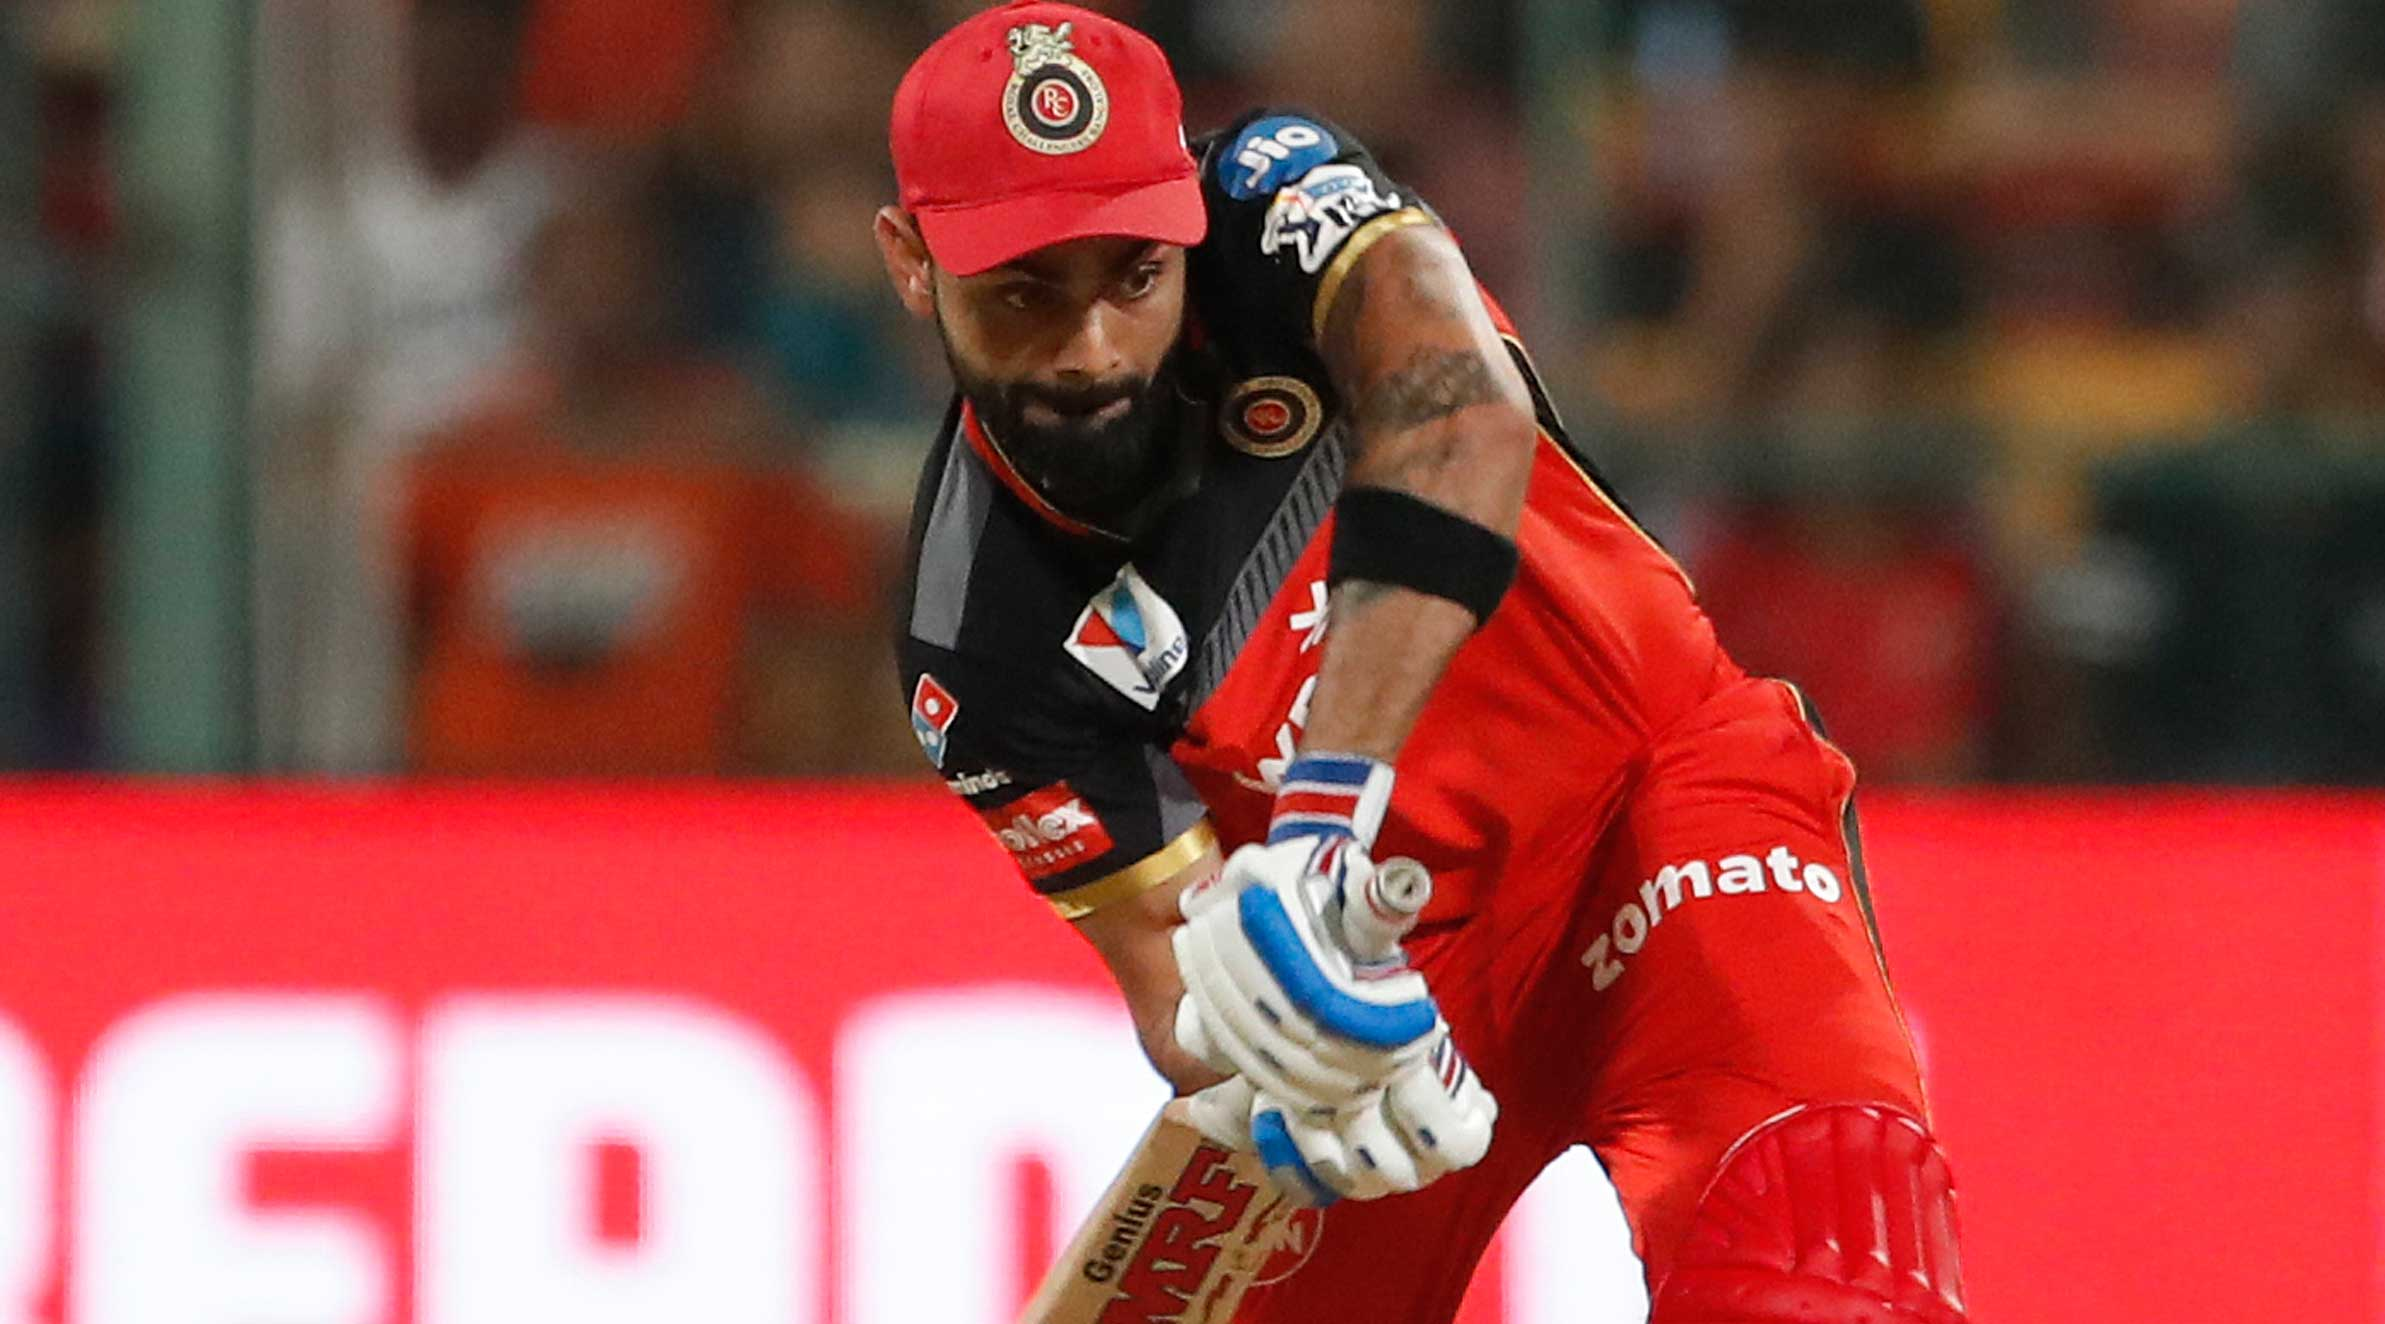 Royal Challengers Bangalore's captain Virat Kohli plays a shot during the IPL T20 cricket match between RCB and Mumbai Indians in Bangalore, on Thursday.